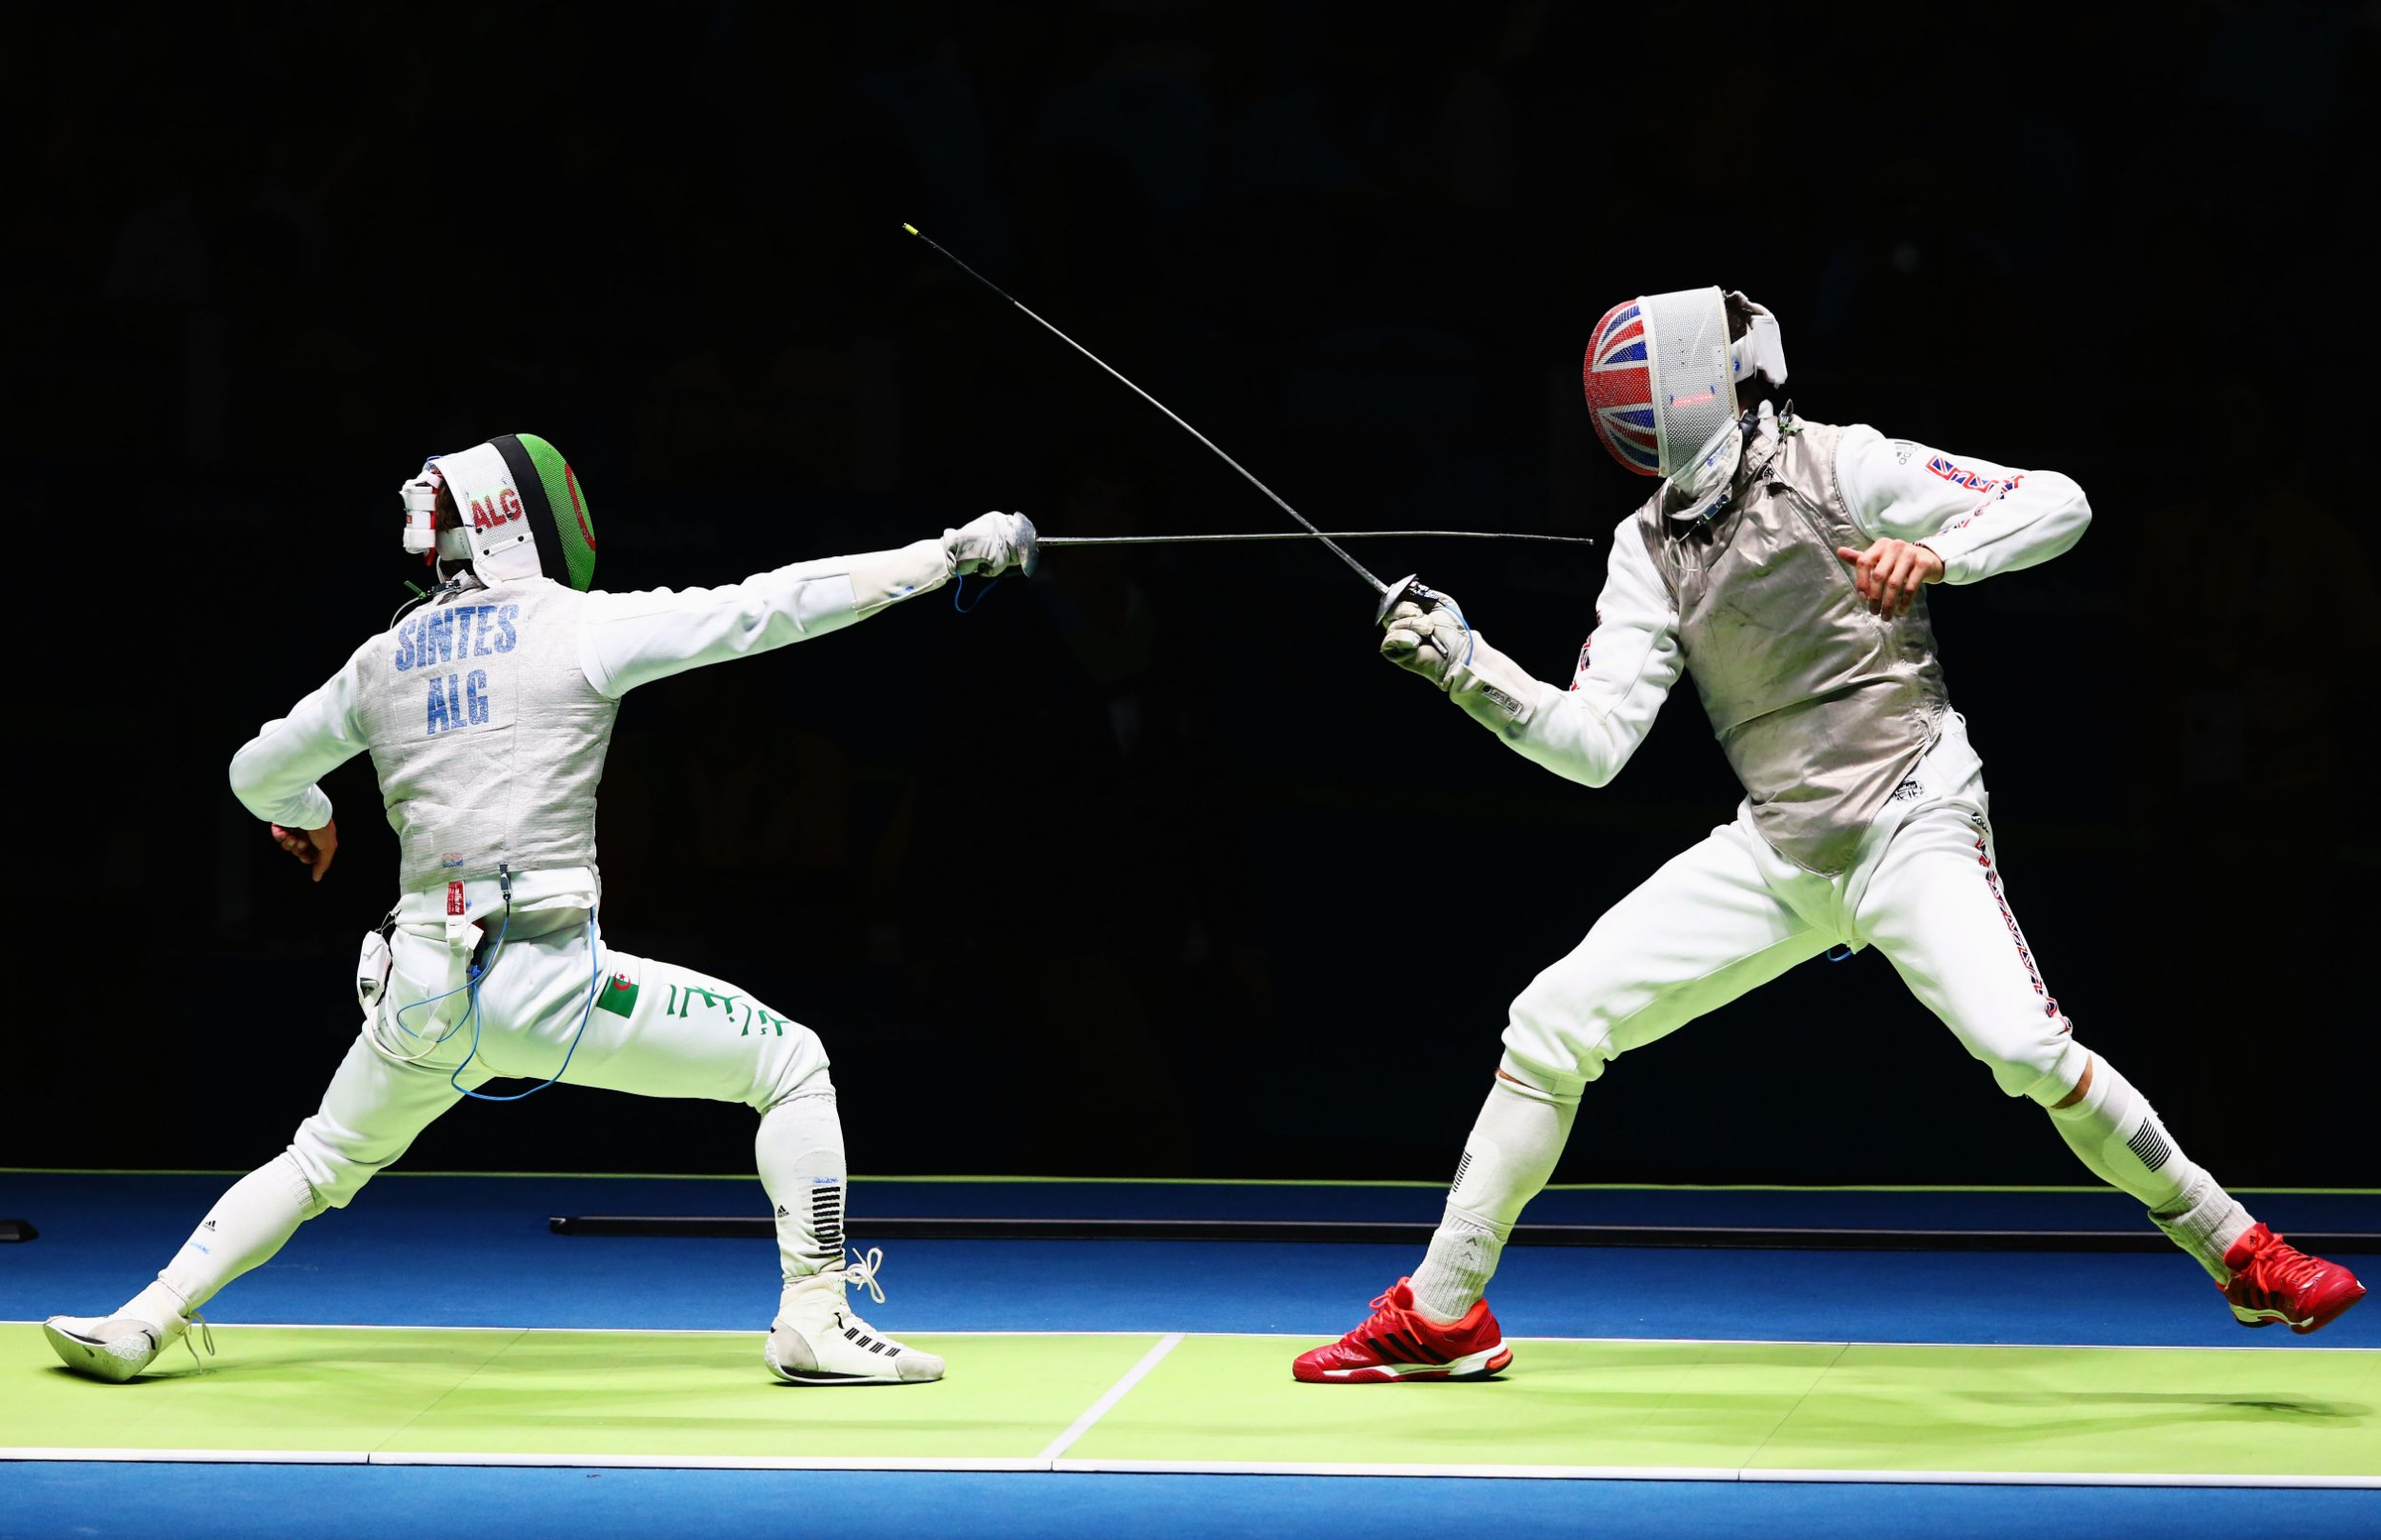 RIO DE JANEIRO, BRAZIL - AUGUST 07: Richard Kruse (R) of Great Britain competes as he defeats Hamid Sintes (L) of Algeria during Men's Individual Foil qualification on Day 2 of the Rio 2016 Olympic Games at Carioca Arena 3 on August 7, 2016 in Rio de Janeiro, Brazil. (Photo by Alex Livesey/Getty Images)